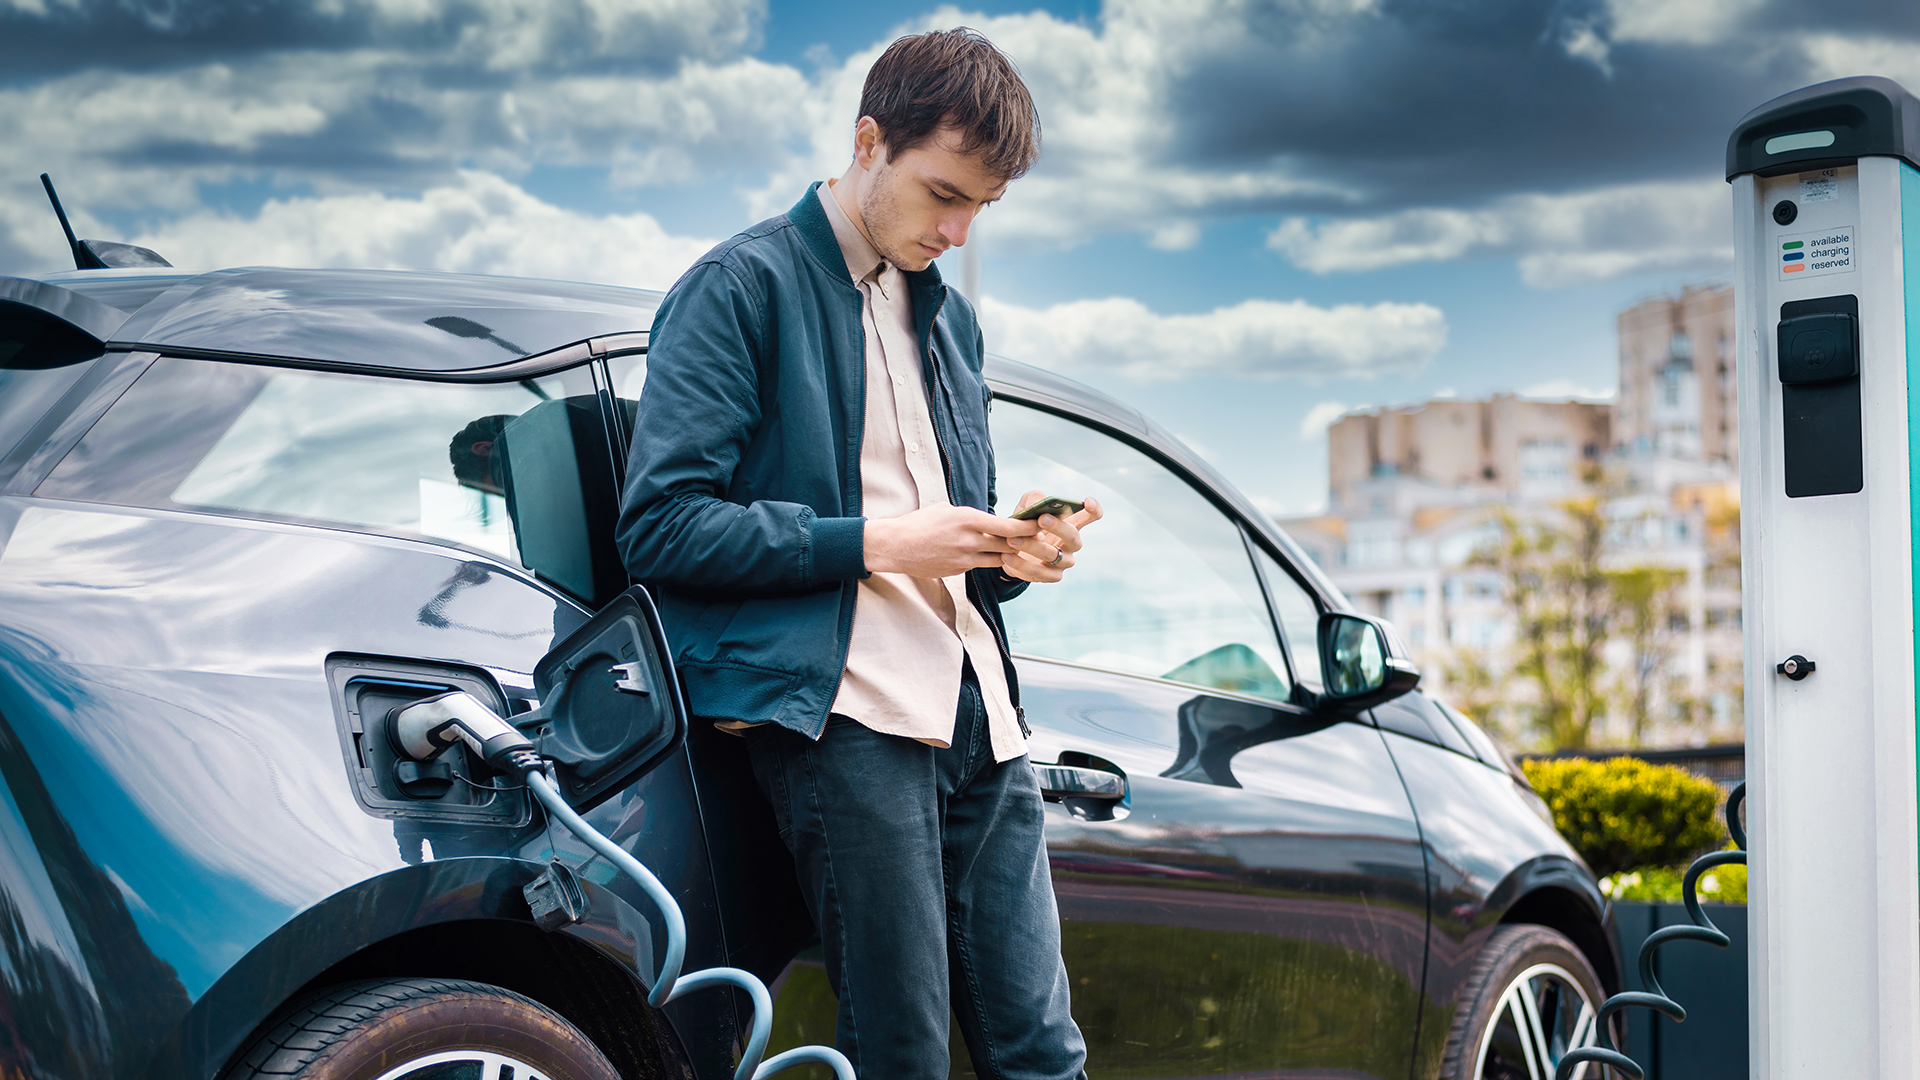 man-charging-his-electric-car-charge-station-using-smartphone